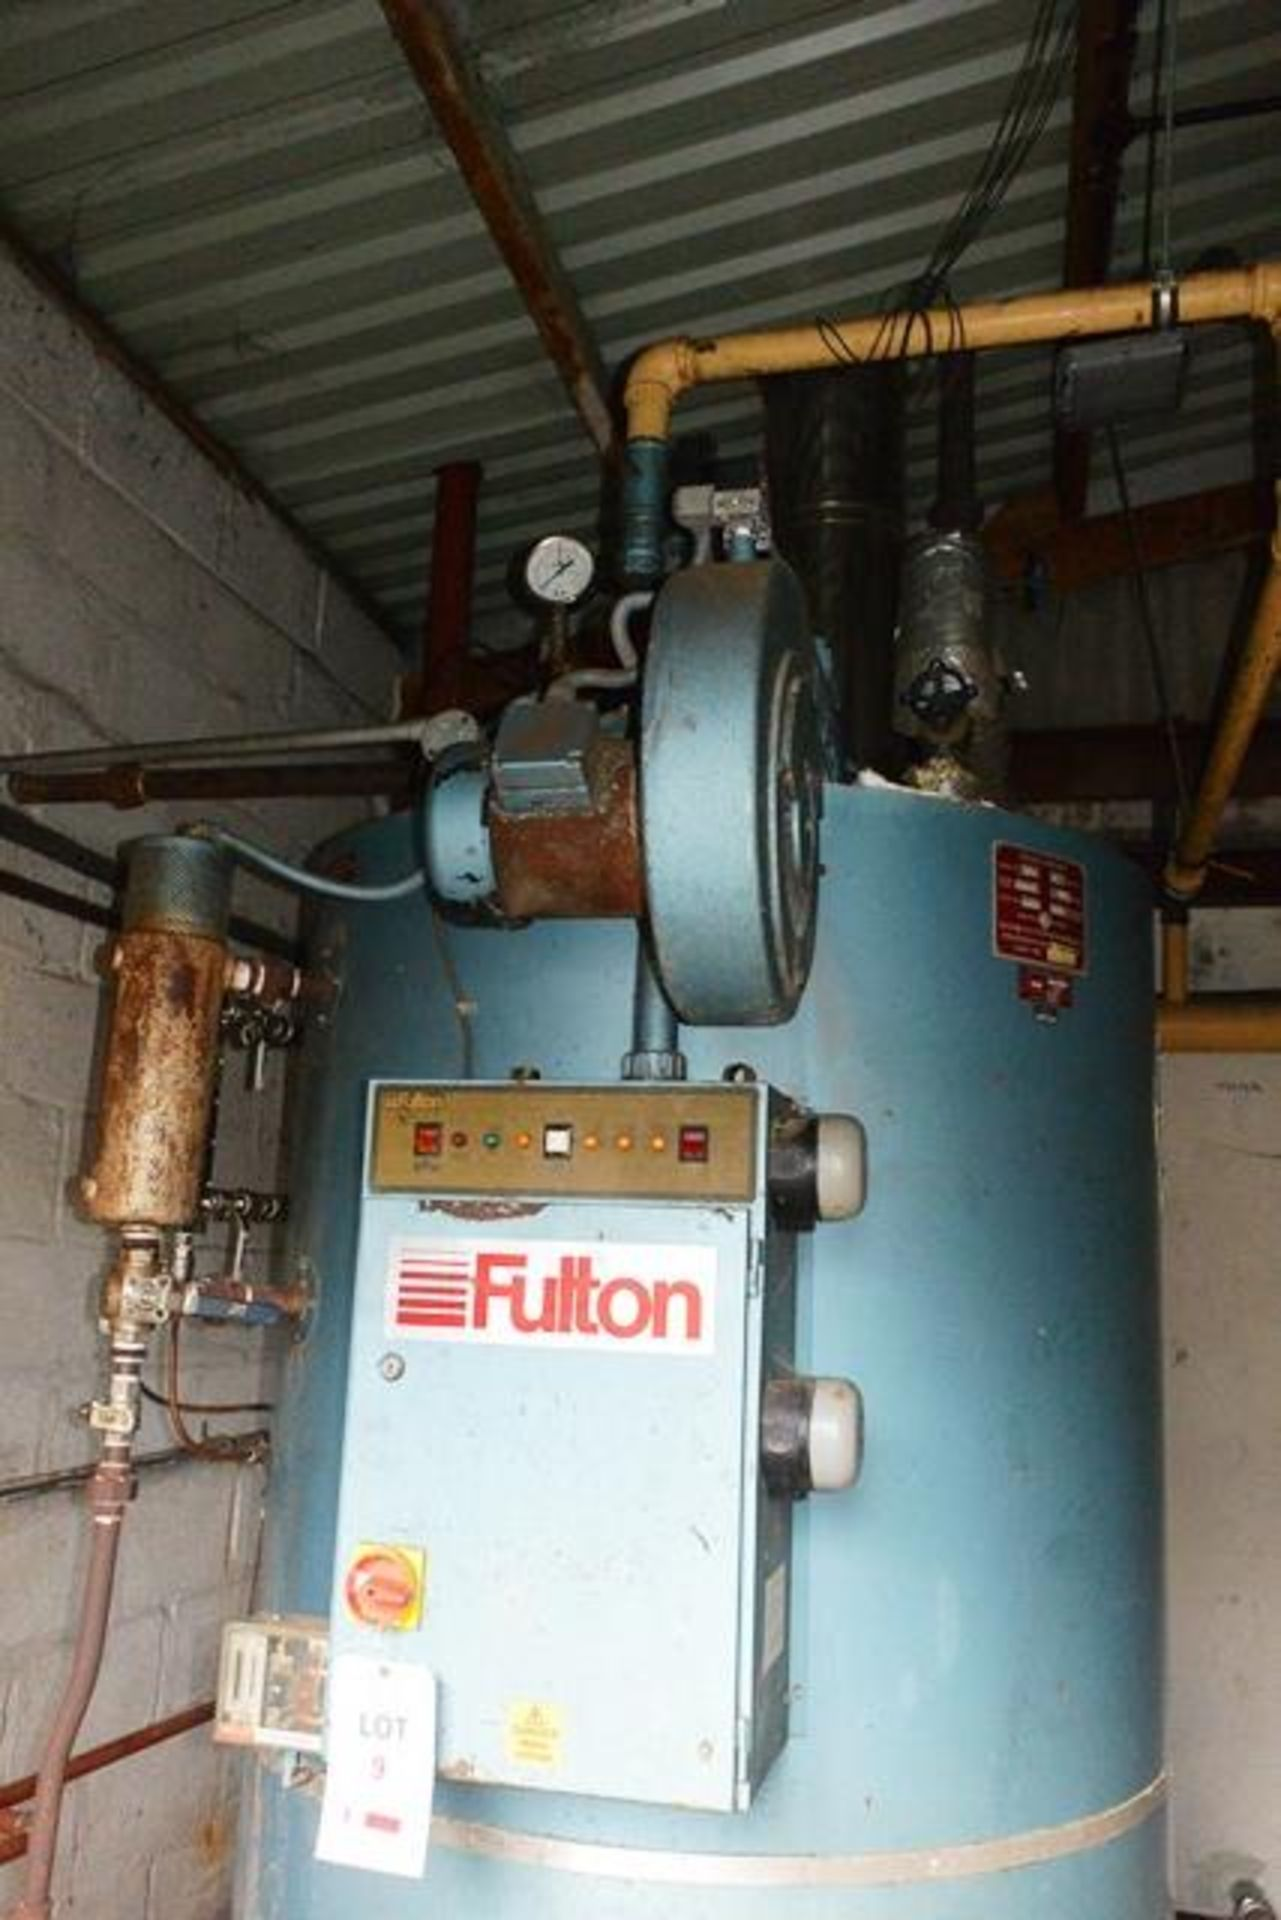 Fulton steam boiler, model 30E, serial no. B7026, design pressure 895 N/mm², test pressure /34N/ - Image 3 of 11